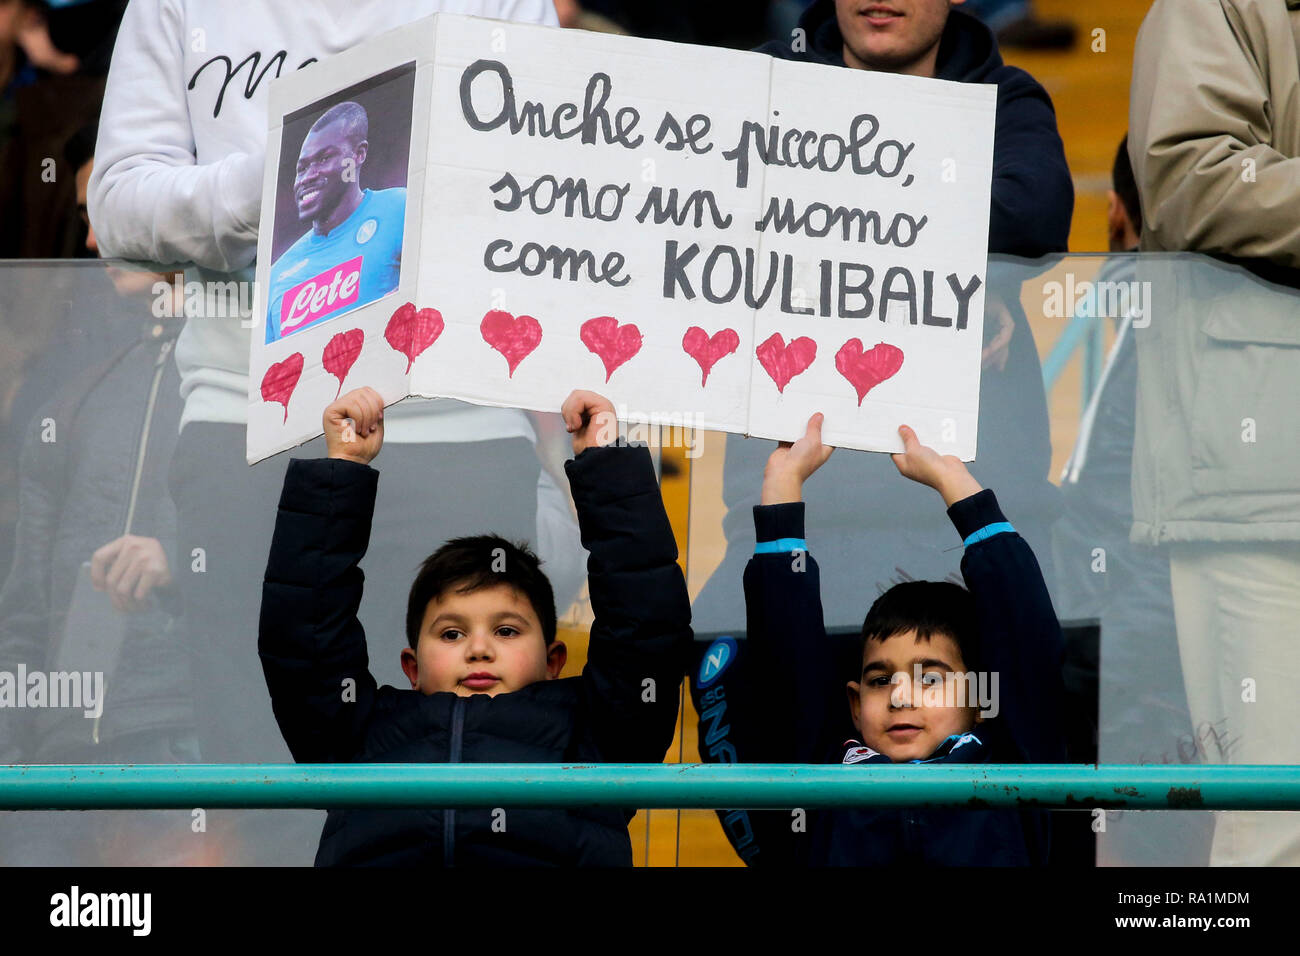 Napoli, Campania, Italy, 29-12-18, Serie A football match SSC Napoli Bologna at the San Paolo Stadium the fans of napoli with the photo of Koulibaly - Stock Image